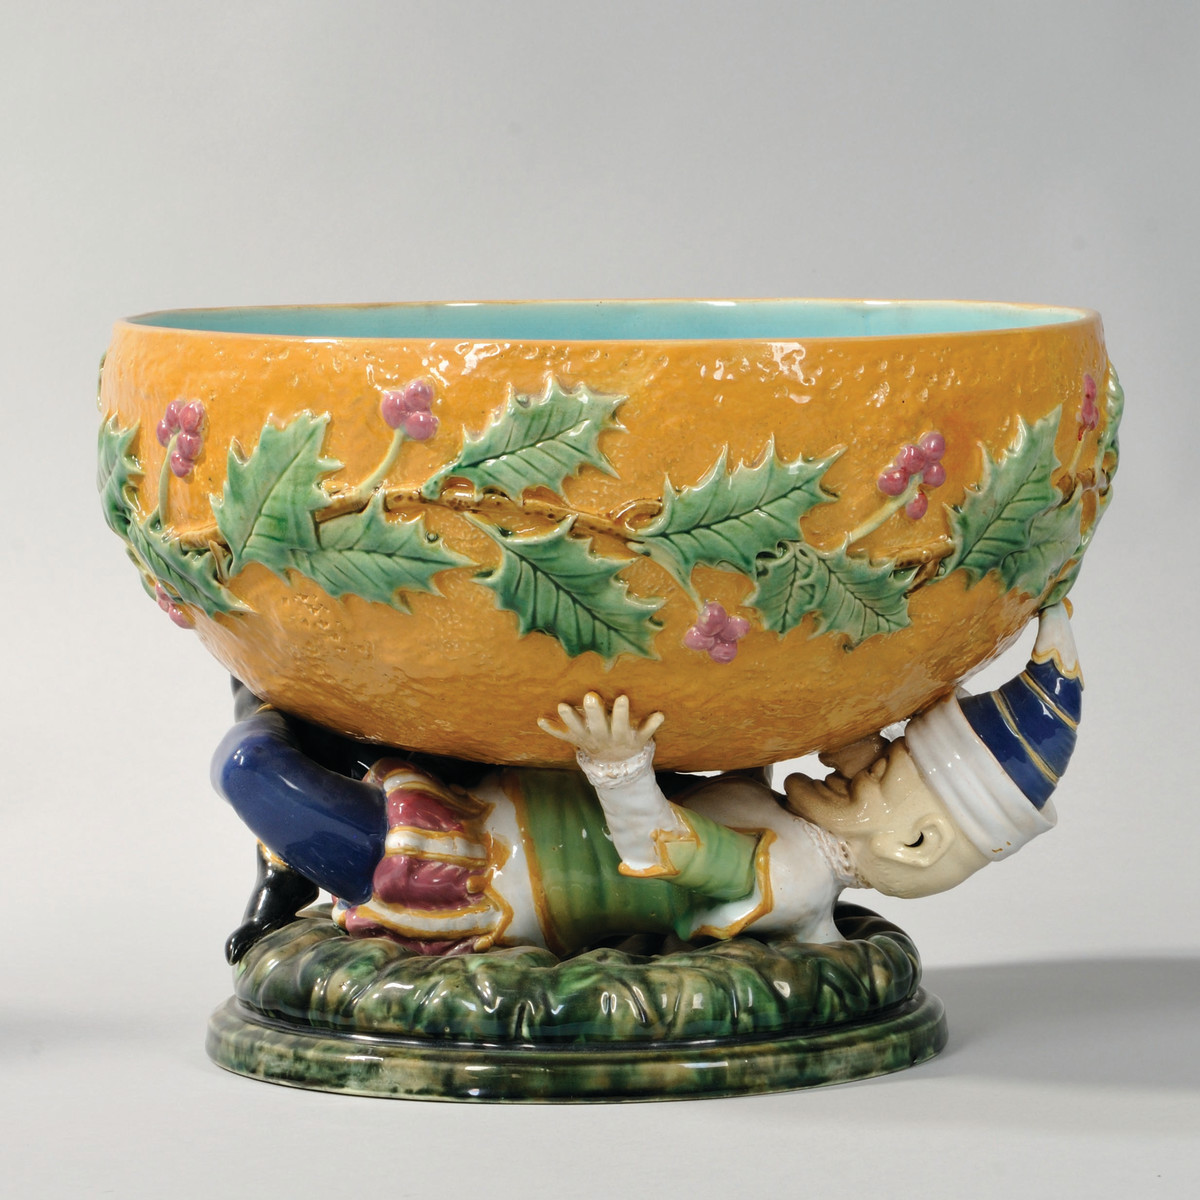 Majolica punch bowl from George Jones, England, circa 1870, with reclining figure of Punch  holding textured orange ground bowl with holly and berries.